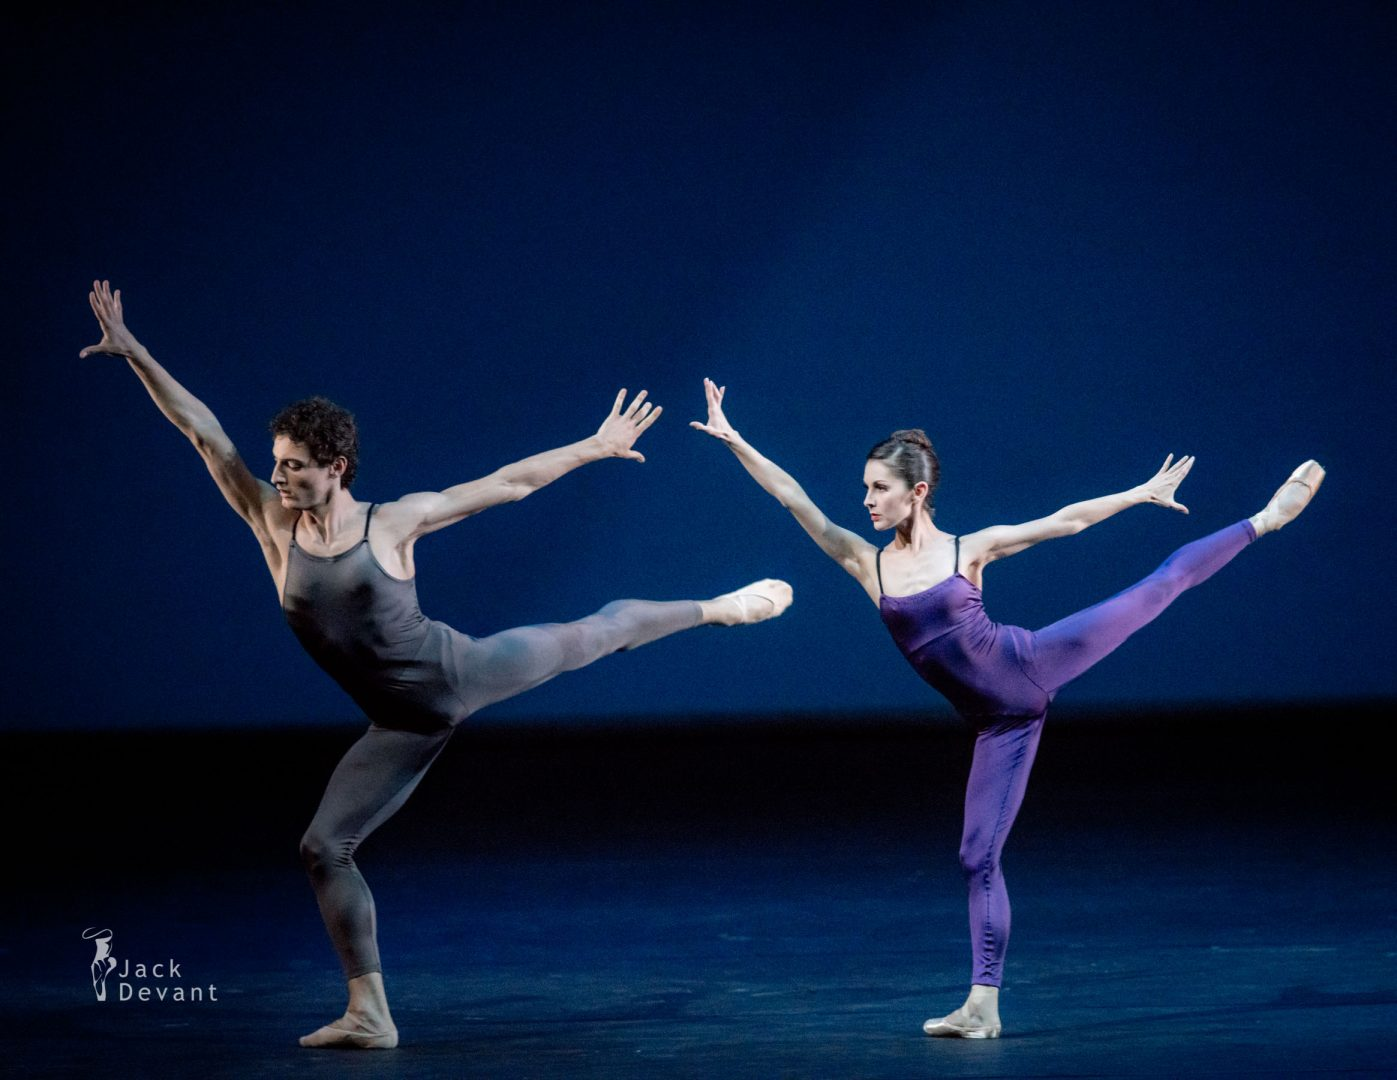 Lauren Strongin and Carlo Di Lanno in Variations for Two Couples 5